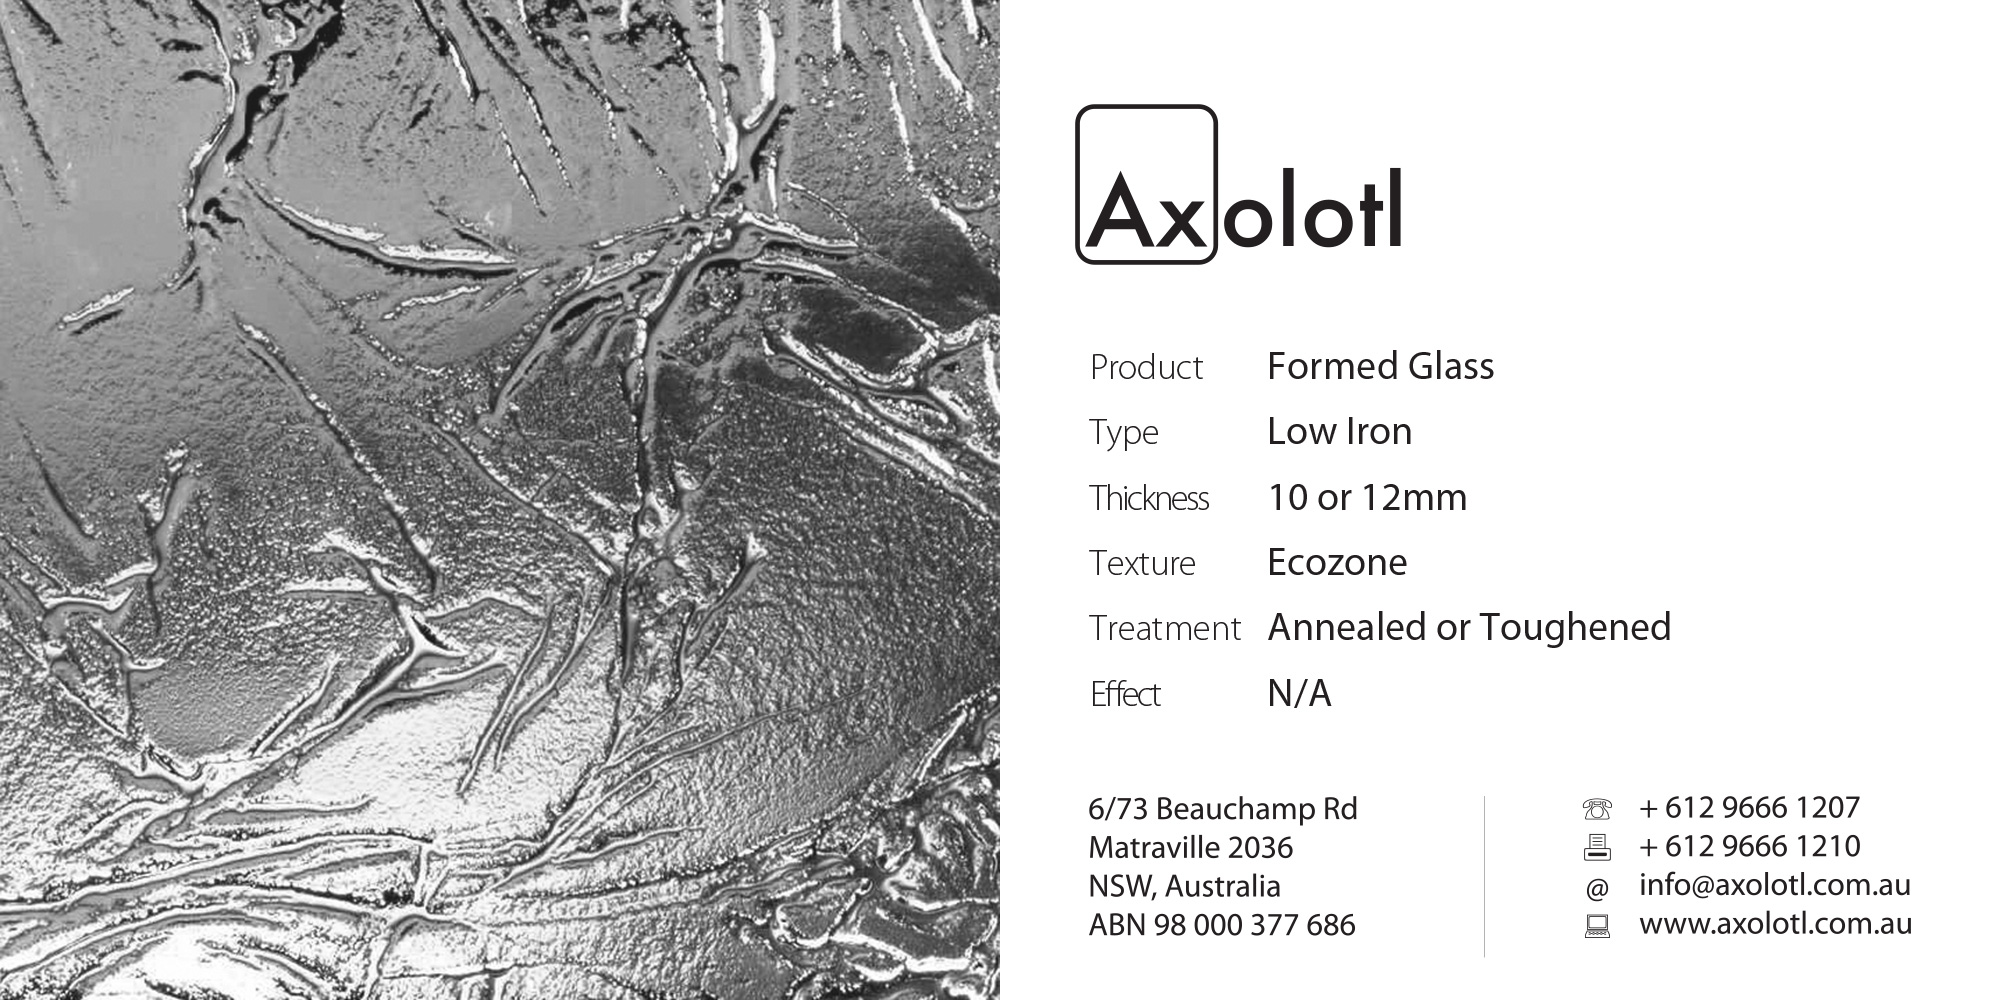 Axolotl_Ecozone_Formed_Glass.jpg